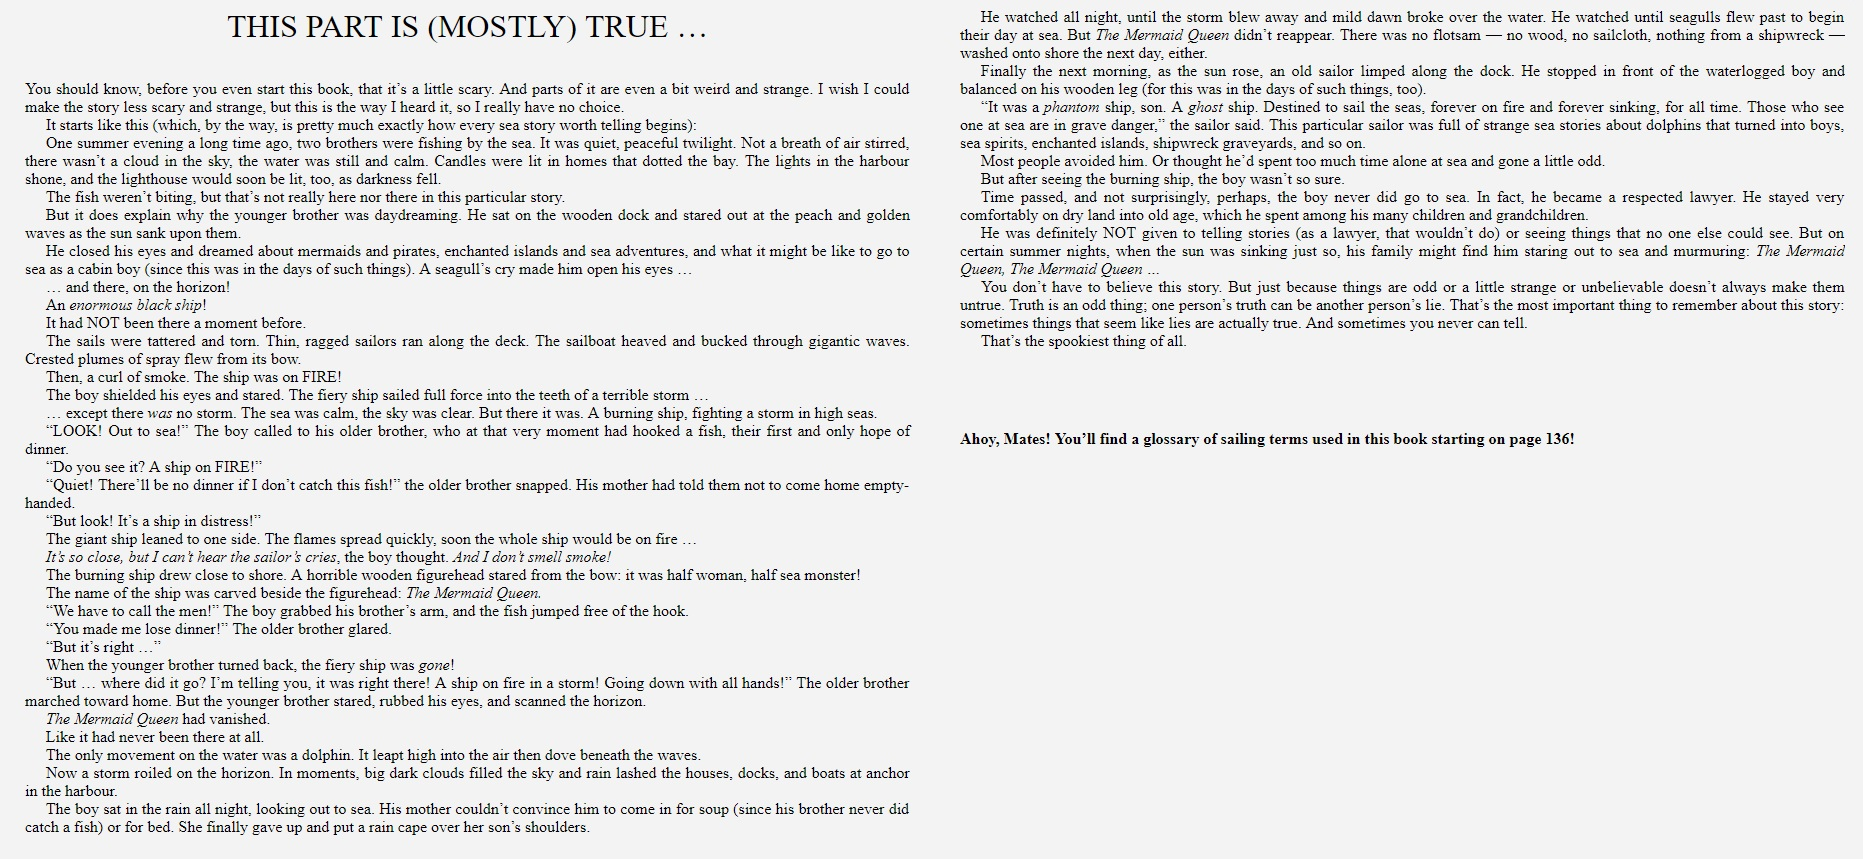 Blackwells and the Briny Deep sample page 1